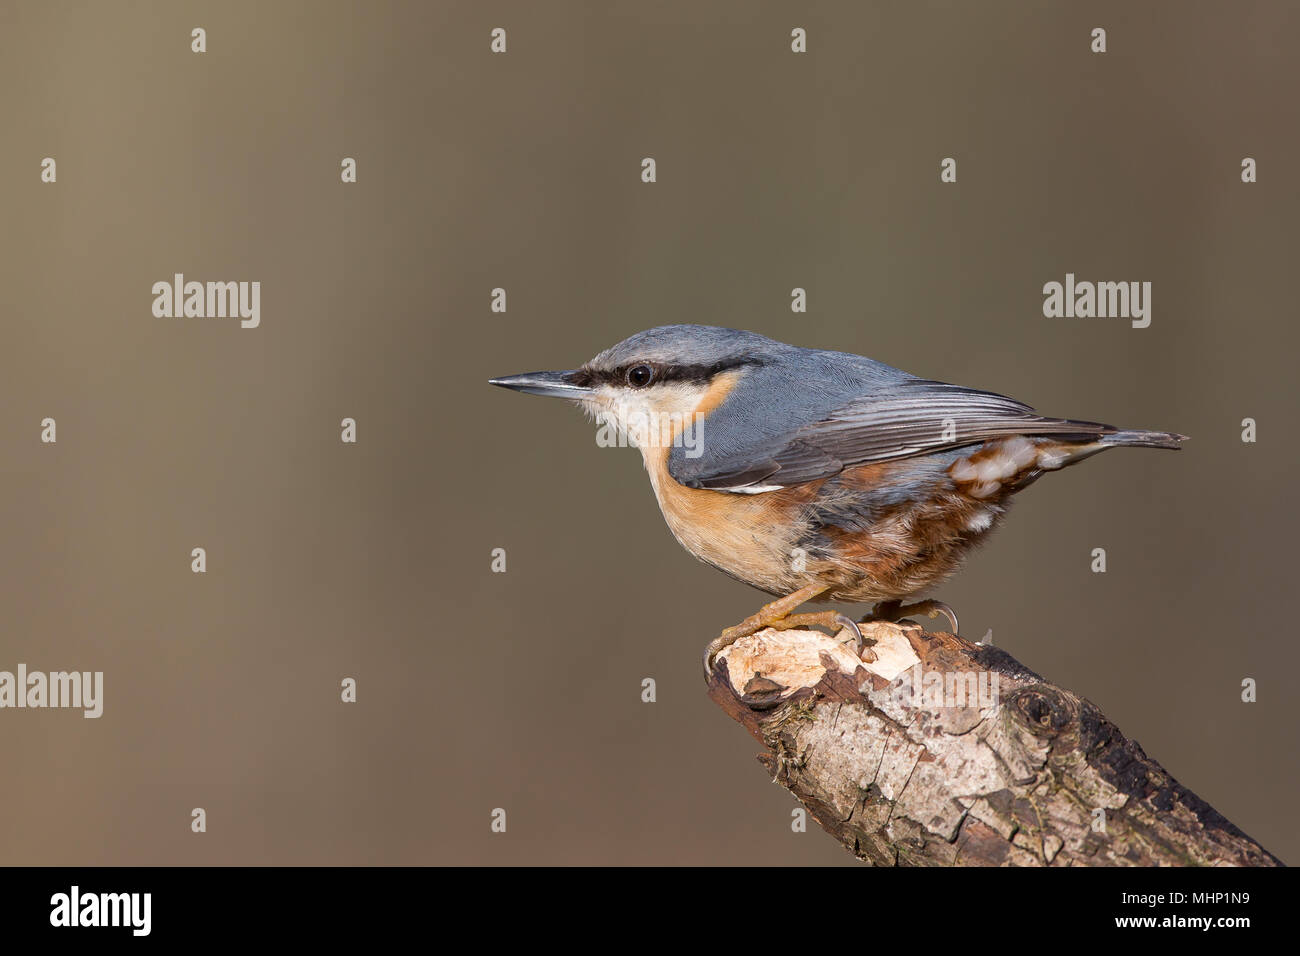 Detailed, landscape close up of single nuthatch (Sitta europaea) in profile, perched on tip of stick; whole bird visible, from the side, facing left. - Stock Image